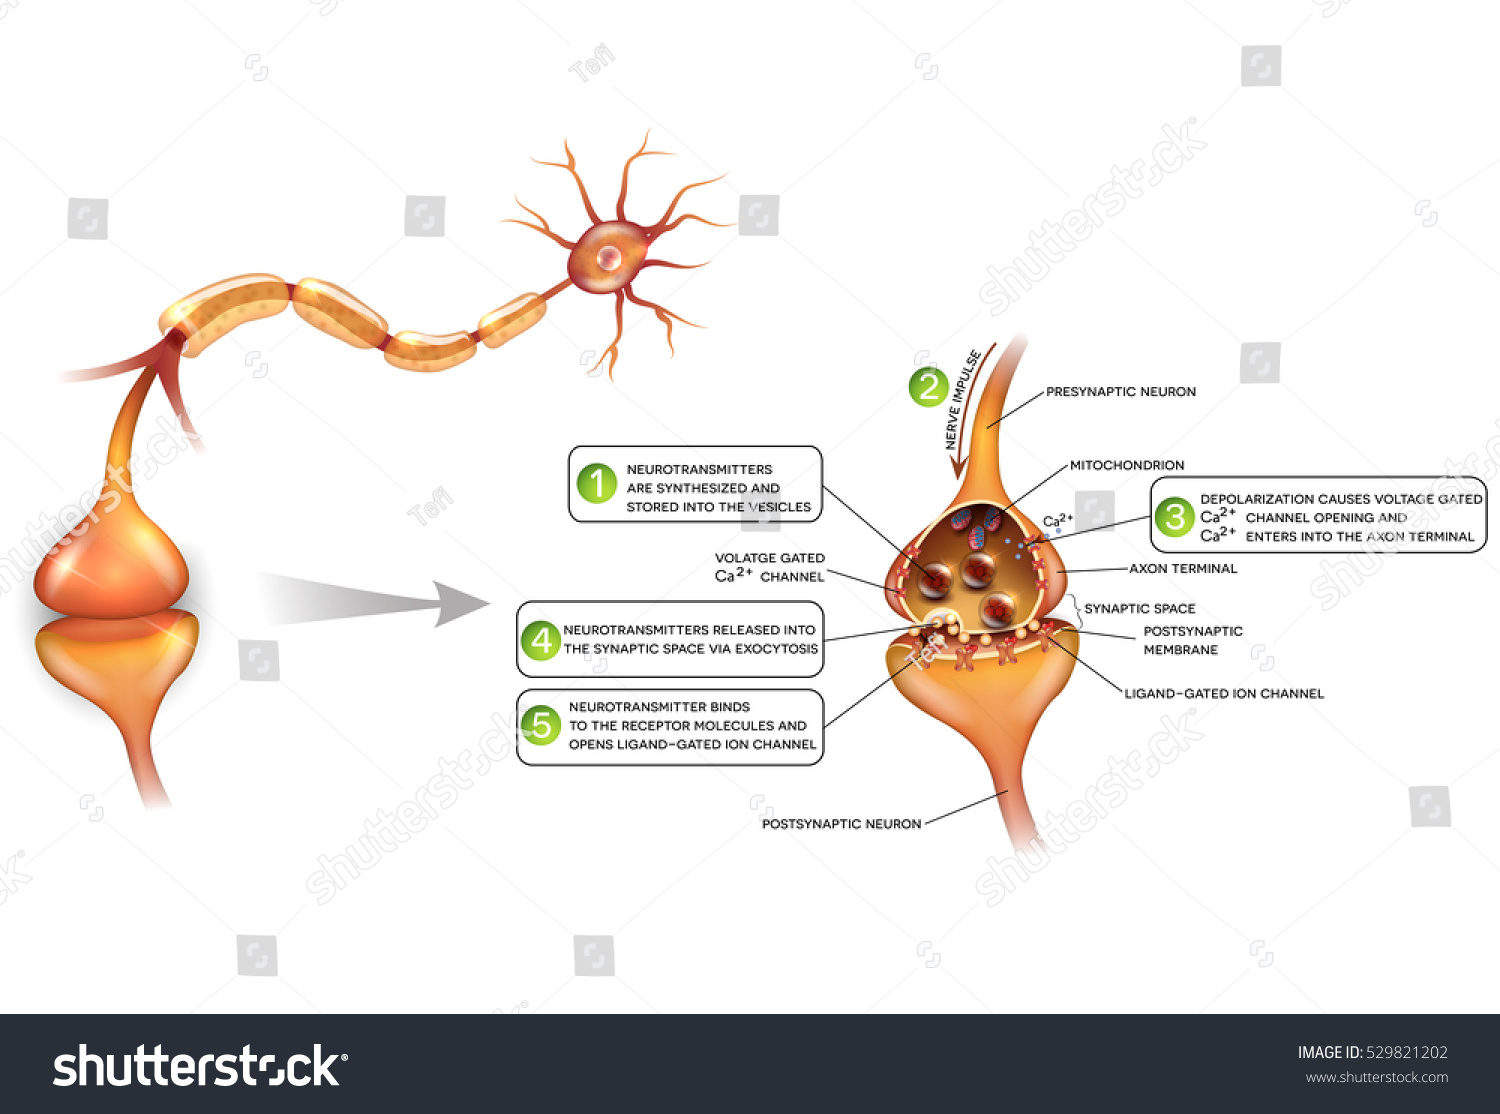 Neurons Closeup Synapse Detailed Anatomy Beautiful Stock Vector ...